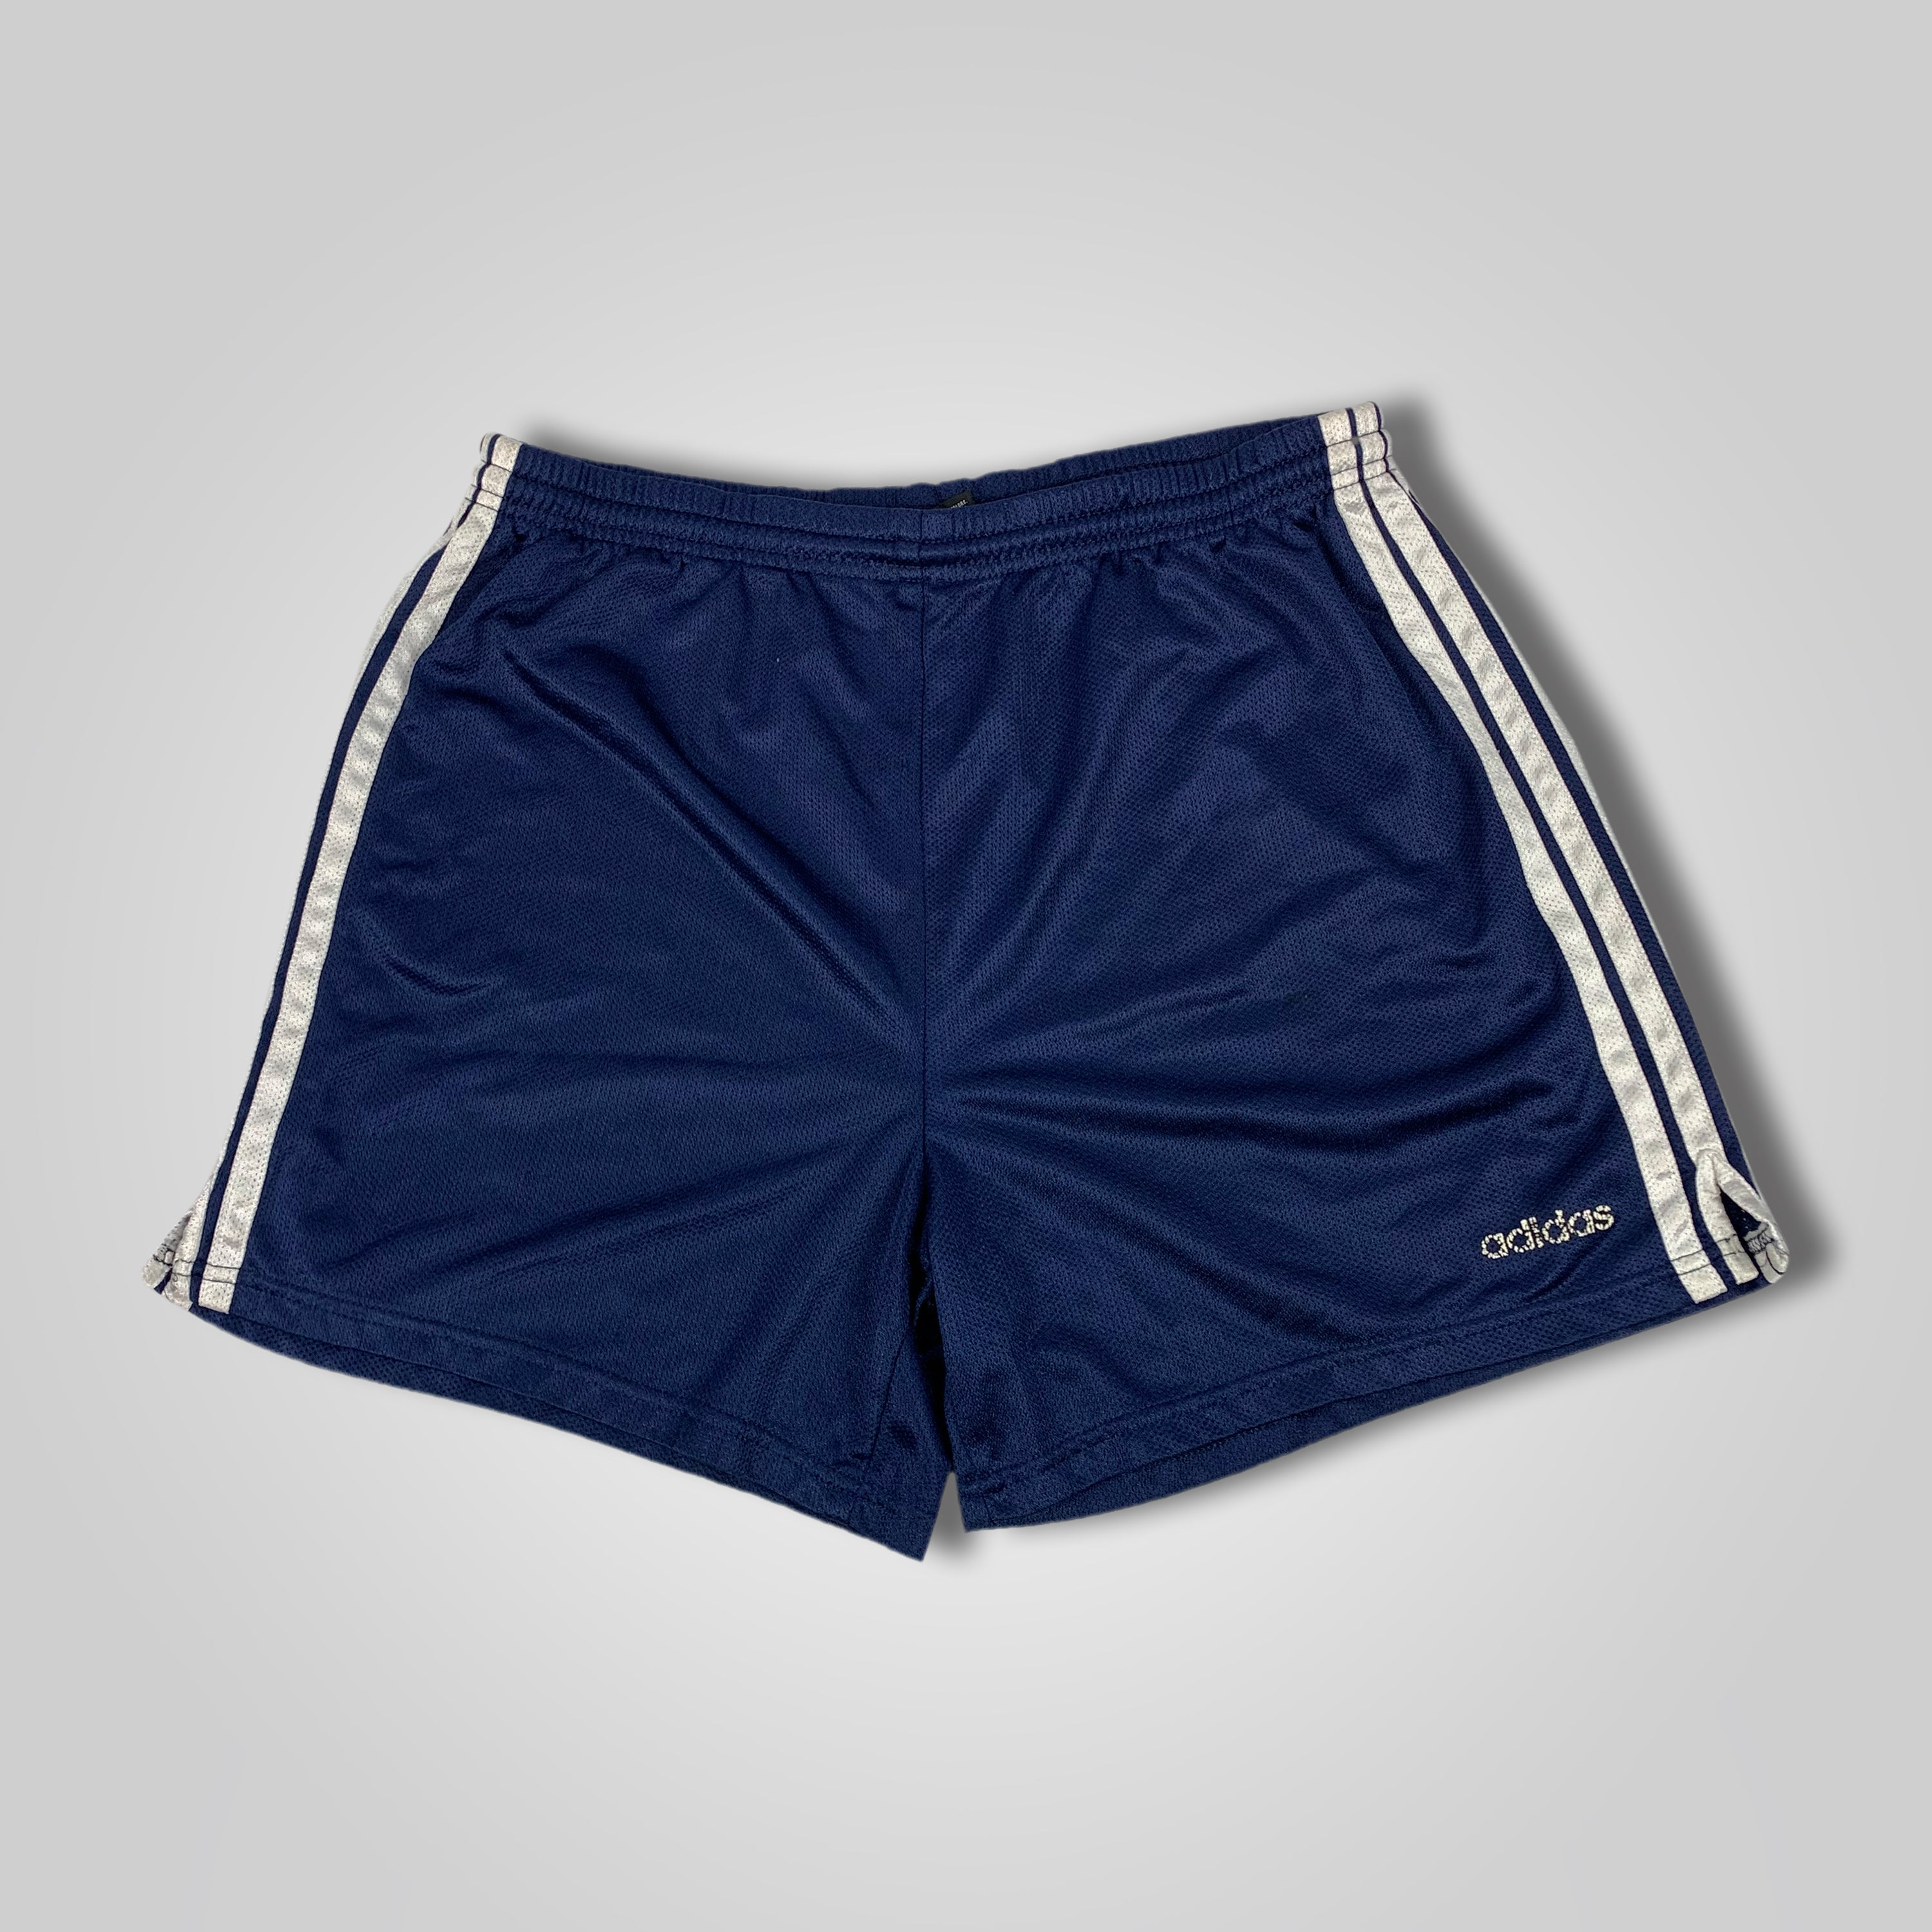 90s Adidas Spell Out Three Stripe Gym Shorts